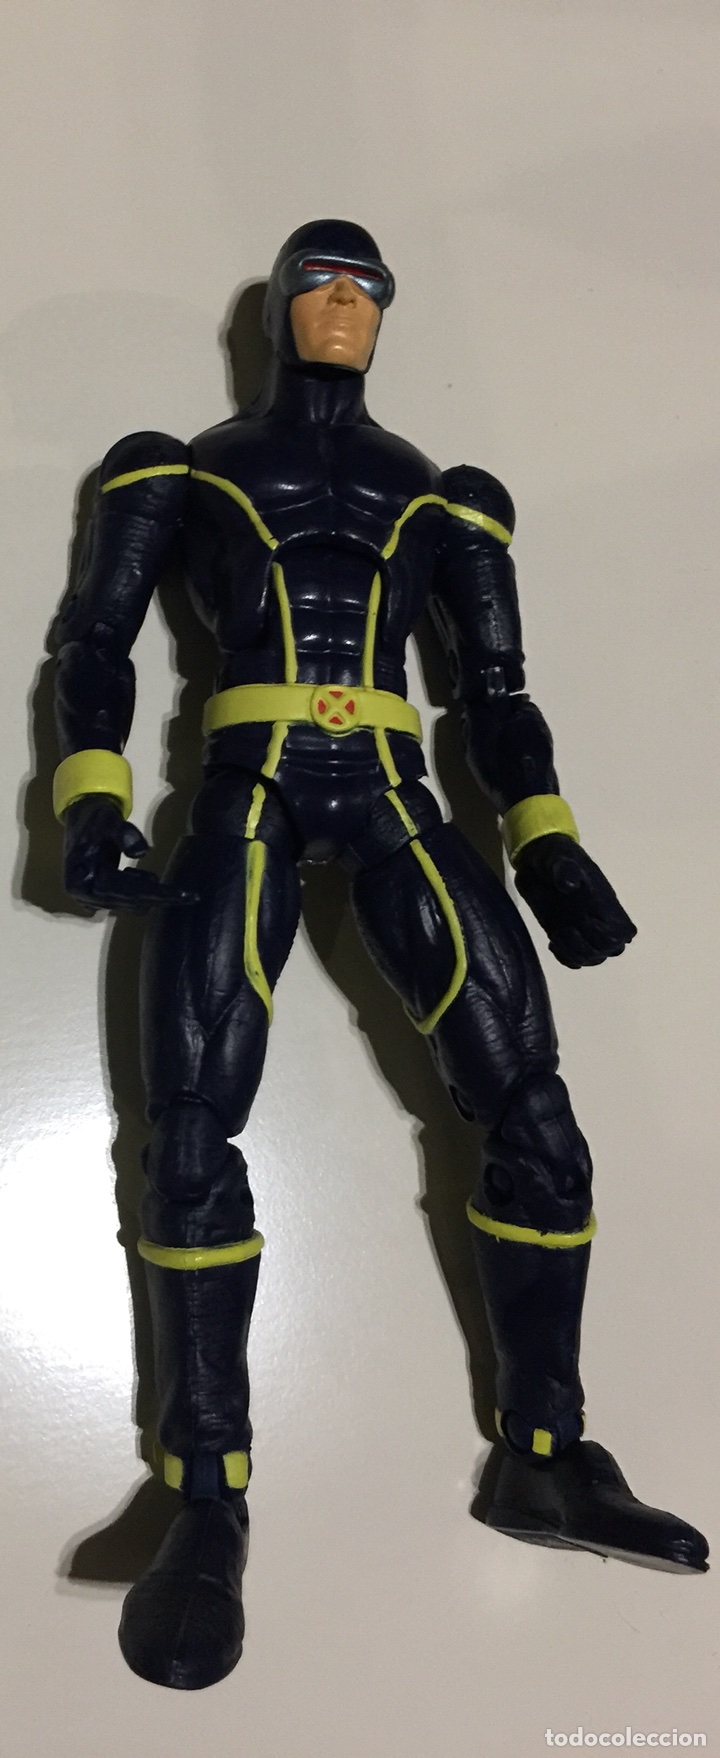 Figuras y Muñecos Marvel: Astonishing X-Men Cyclops - Foto 1 - 102967168